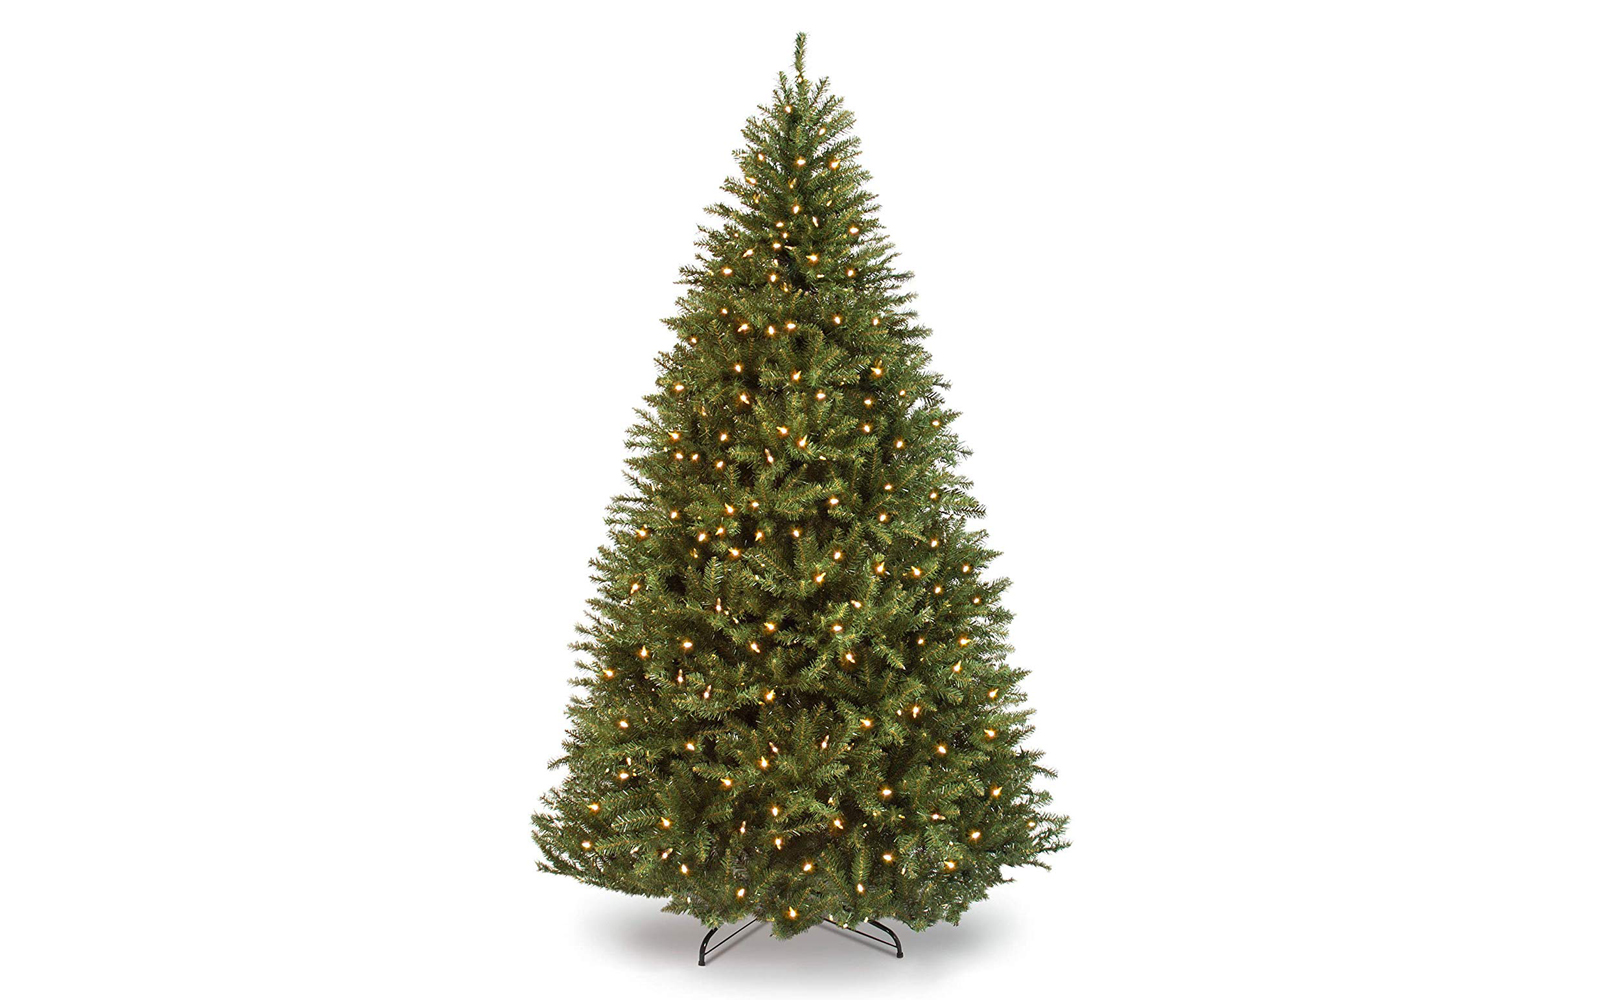 Best Choice Products 6ft Pre-Lit Hinged Douglas Full Fir Artificial Christmas Tree